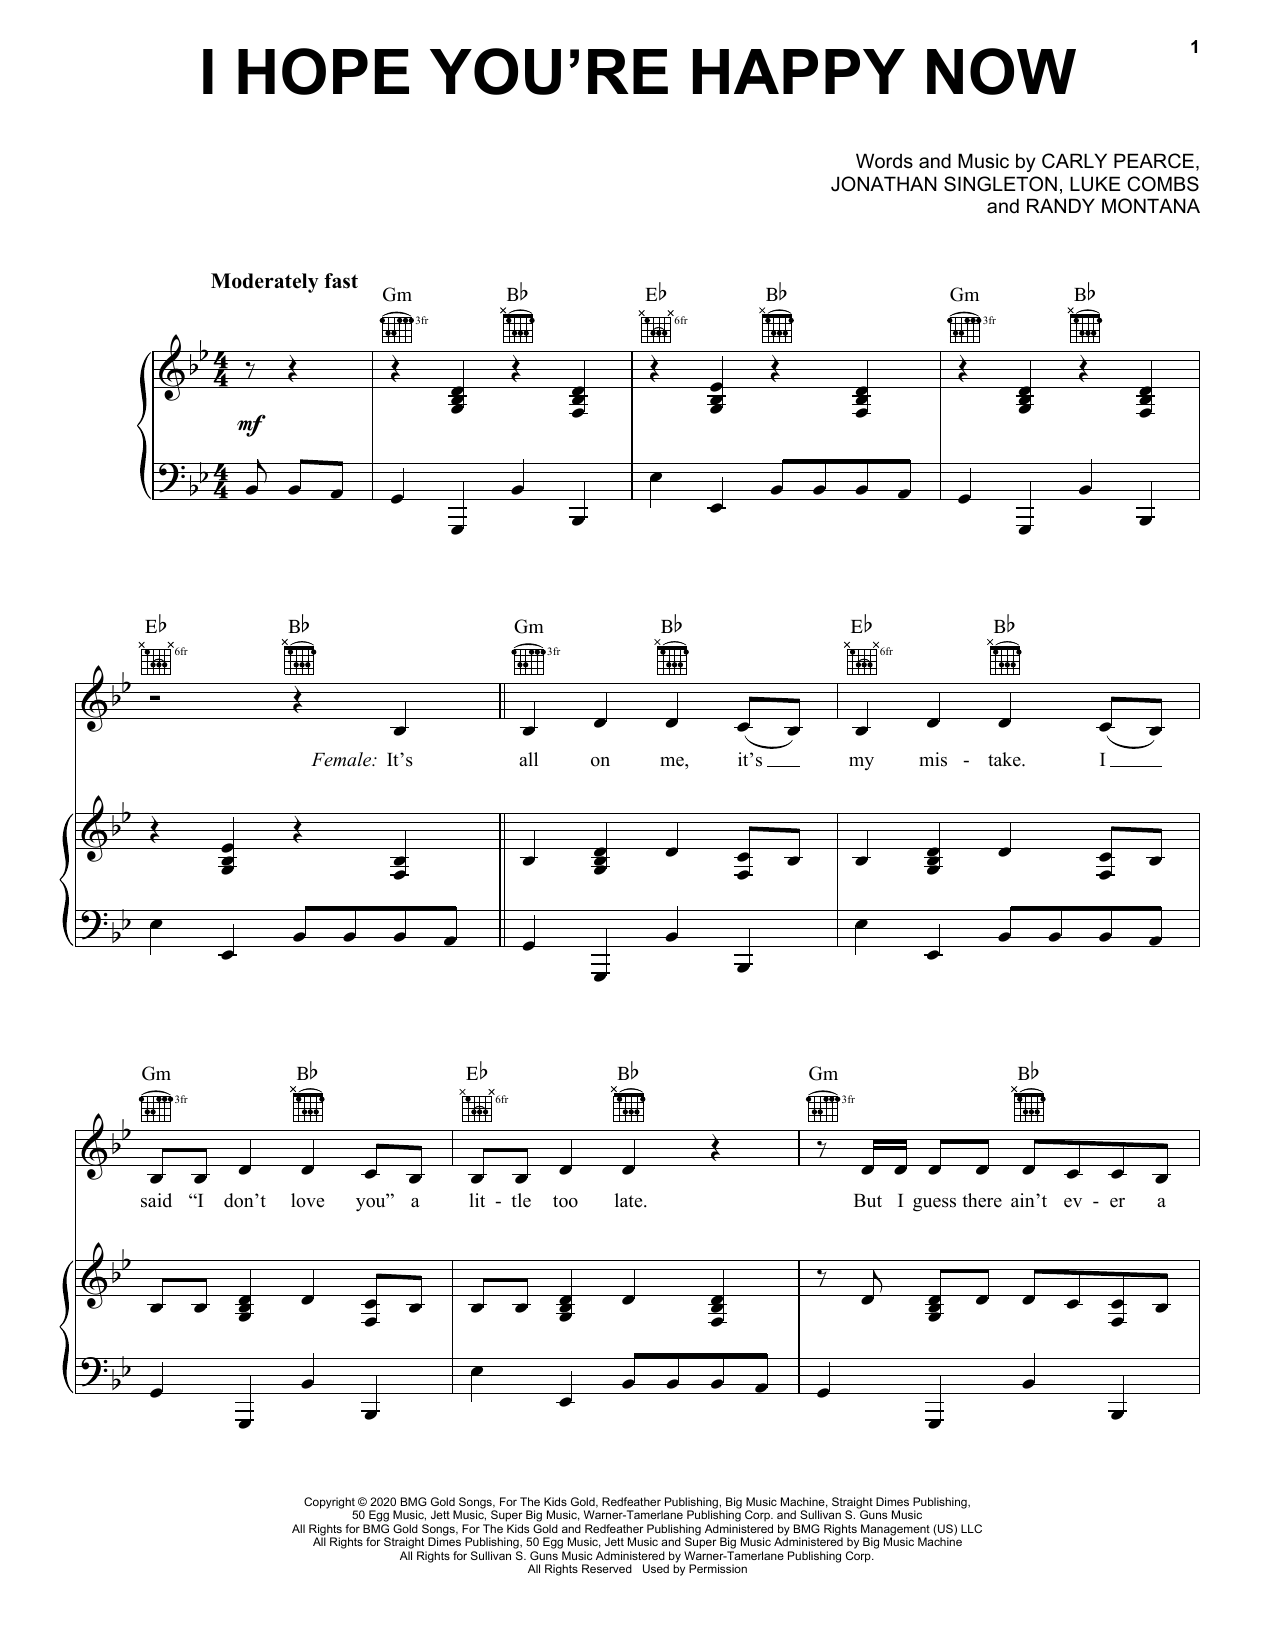 Carly Pearce & Lee Brice I Hope You're Happy Now sheet music notes and chords. Download Printable PDF.